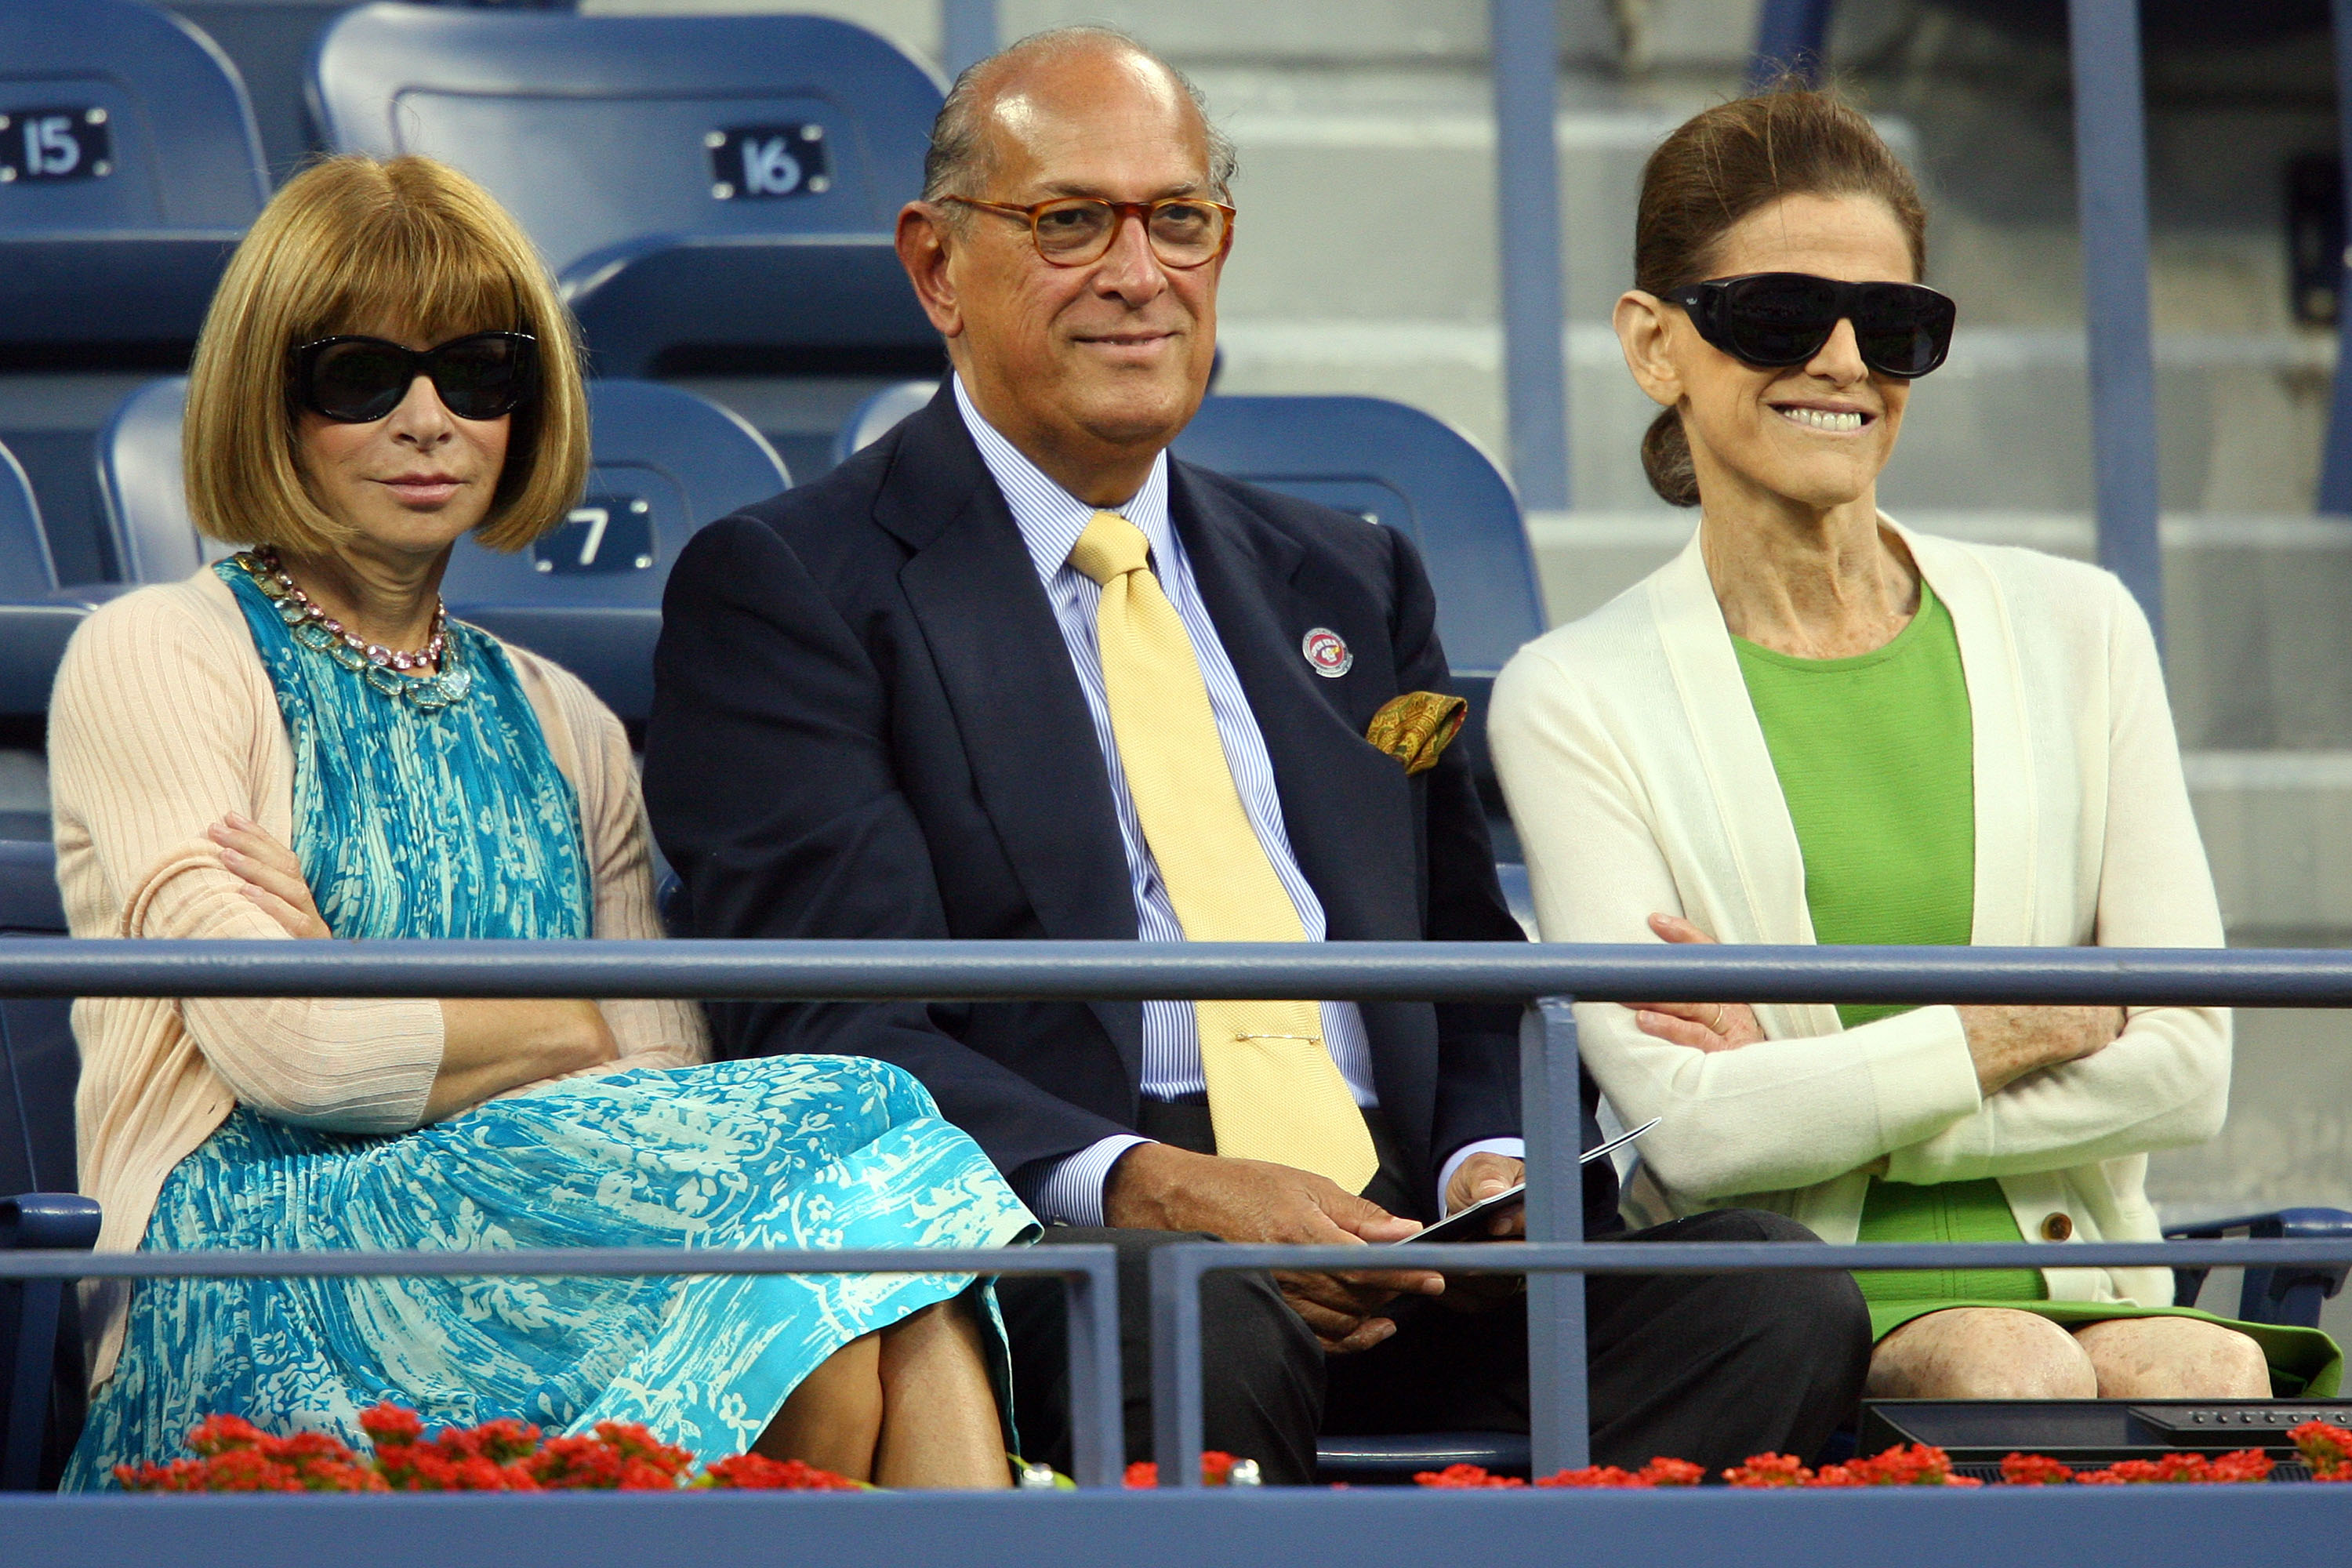 Forget Rafael Nadal, Anna Wintour Still Loves Her Roger